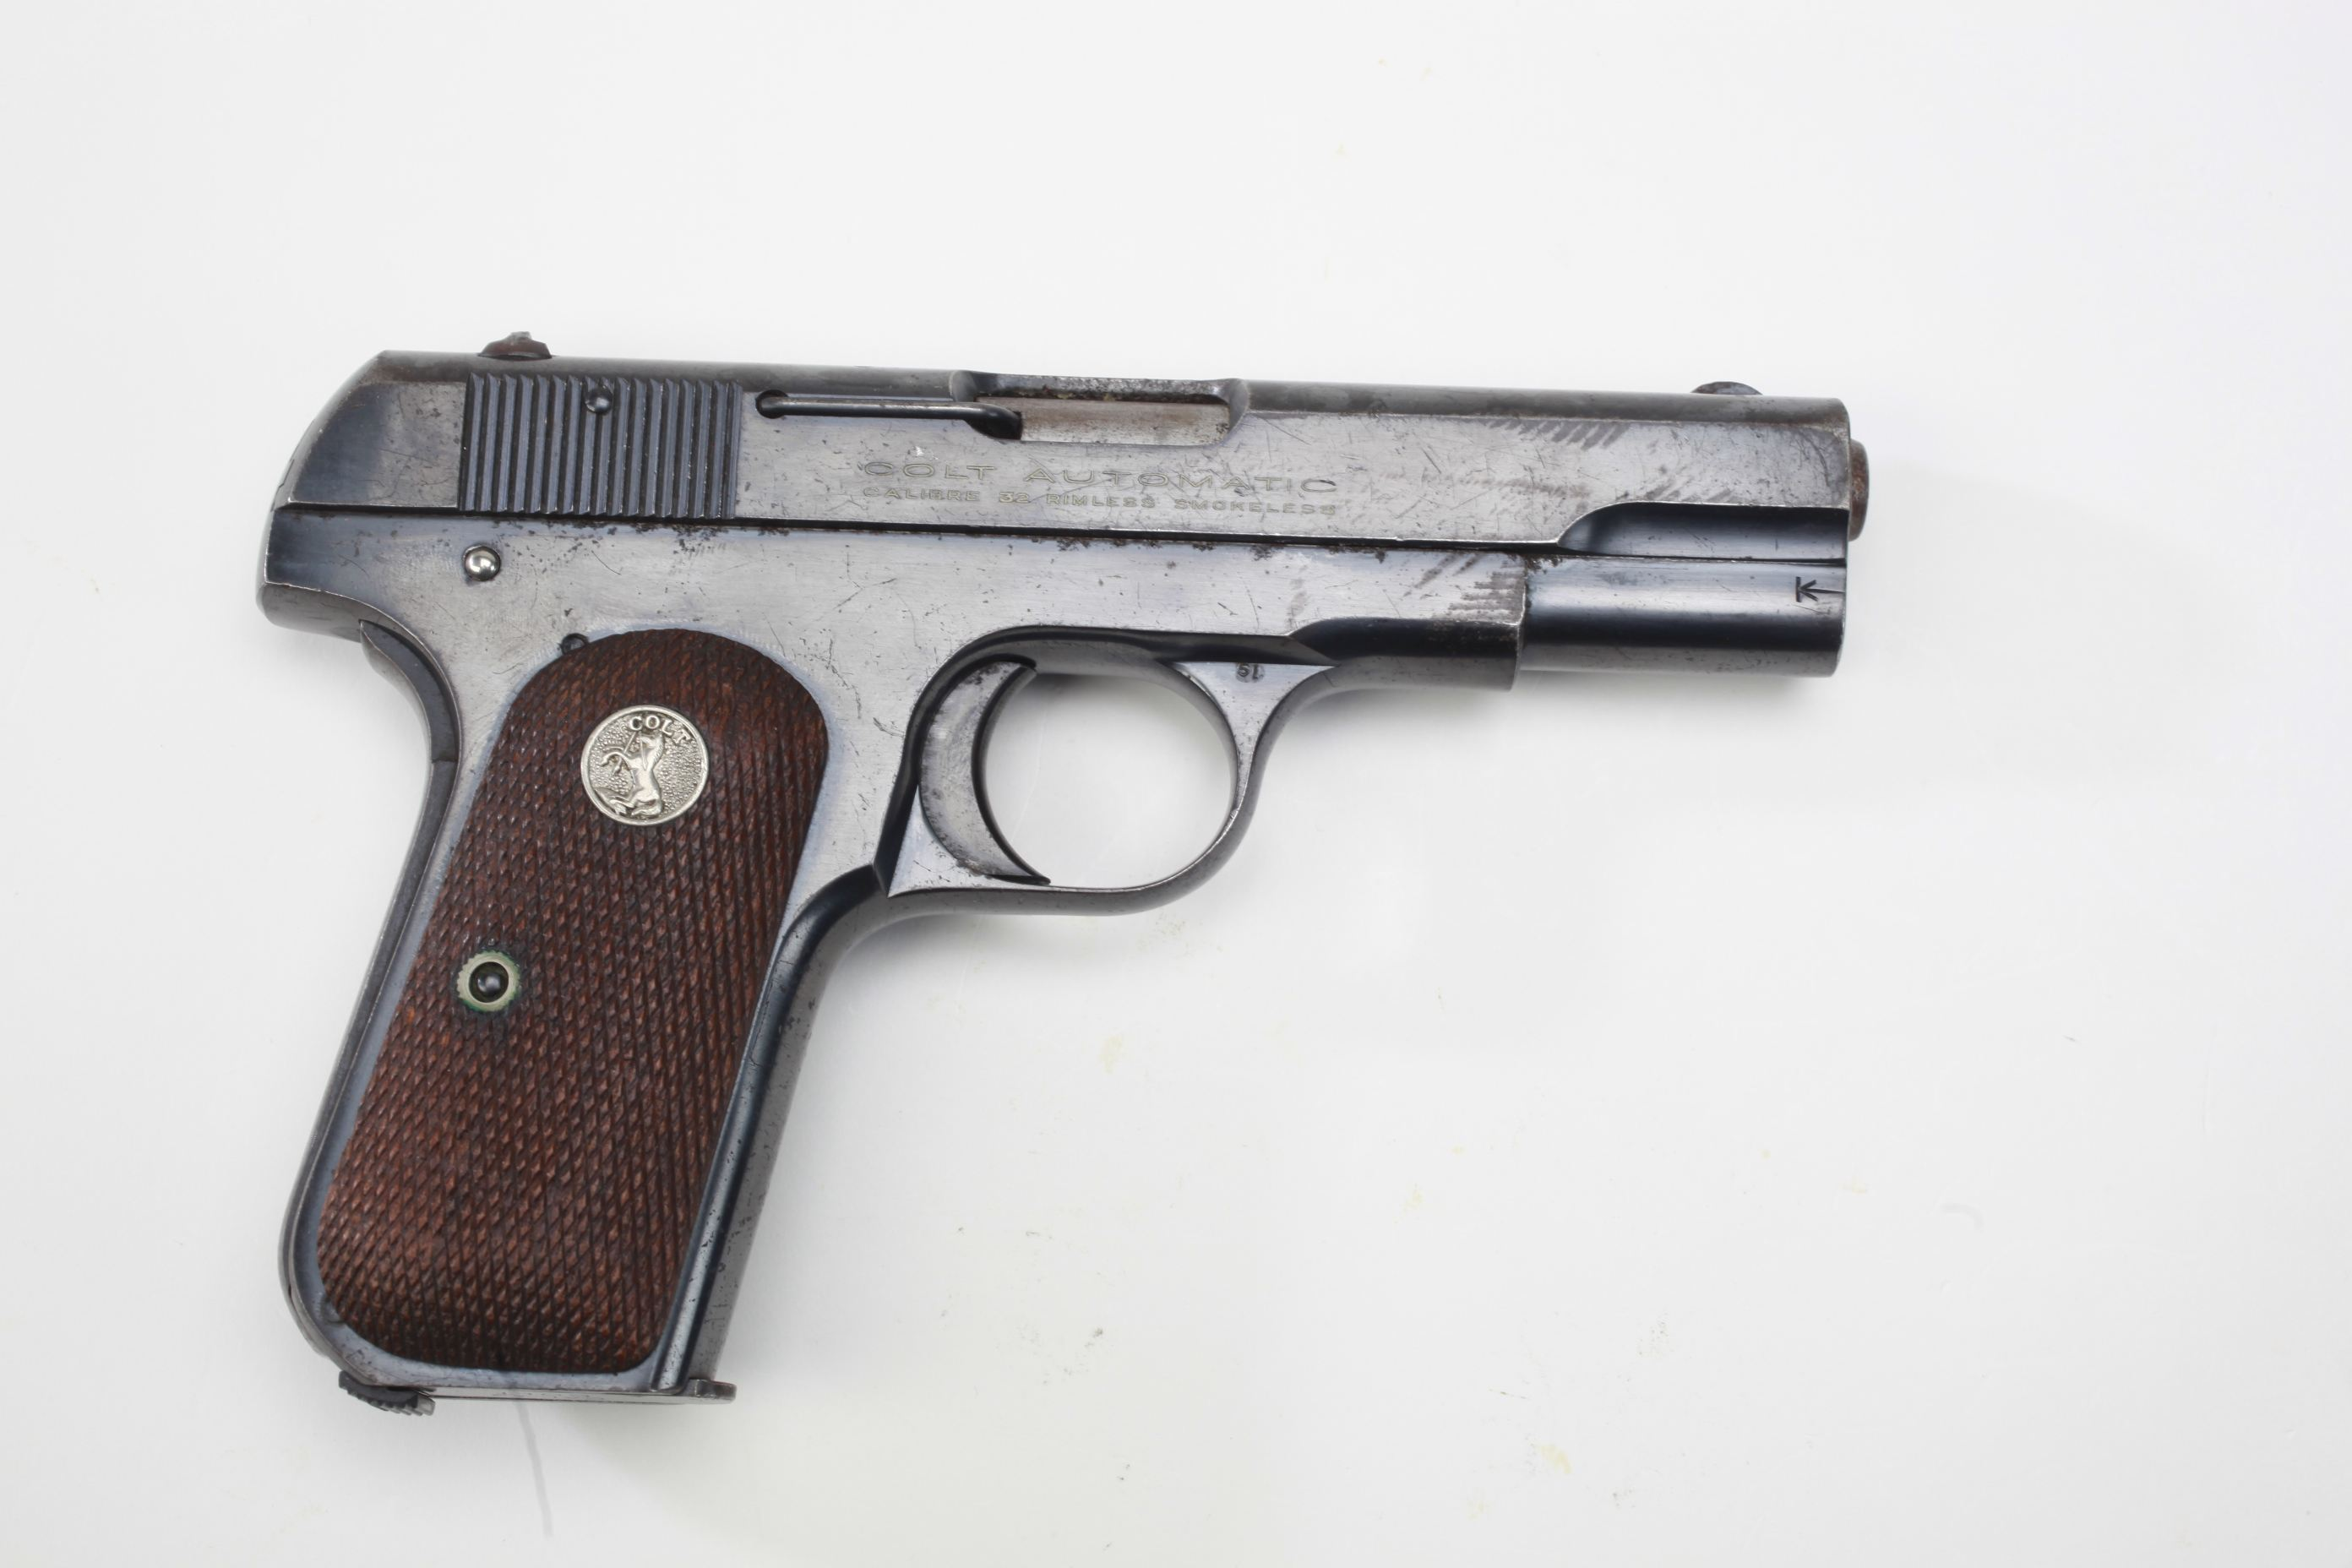 Colt Model 1903 Type III Pocket Automatic Pistol